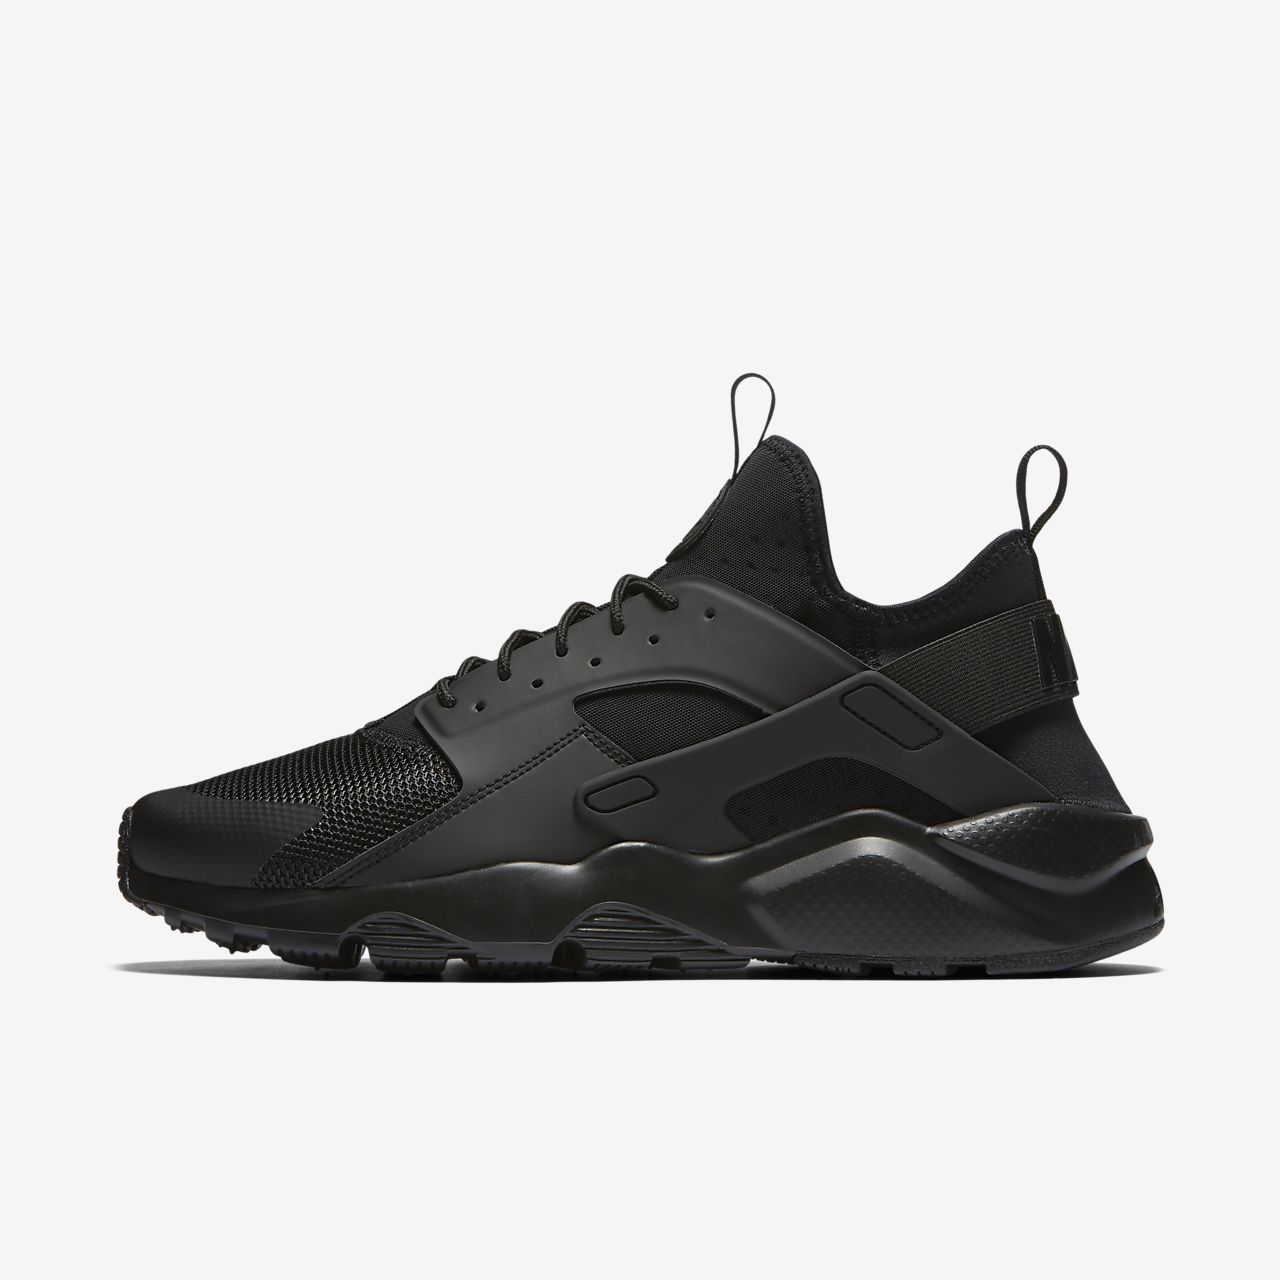 0c12ecb2c8a ... wholesale nike air huarache ultra mens shoe 9d4cd ebce4